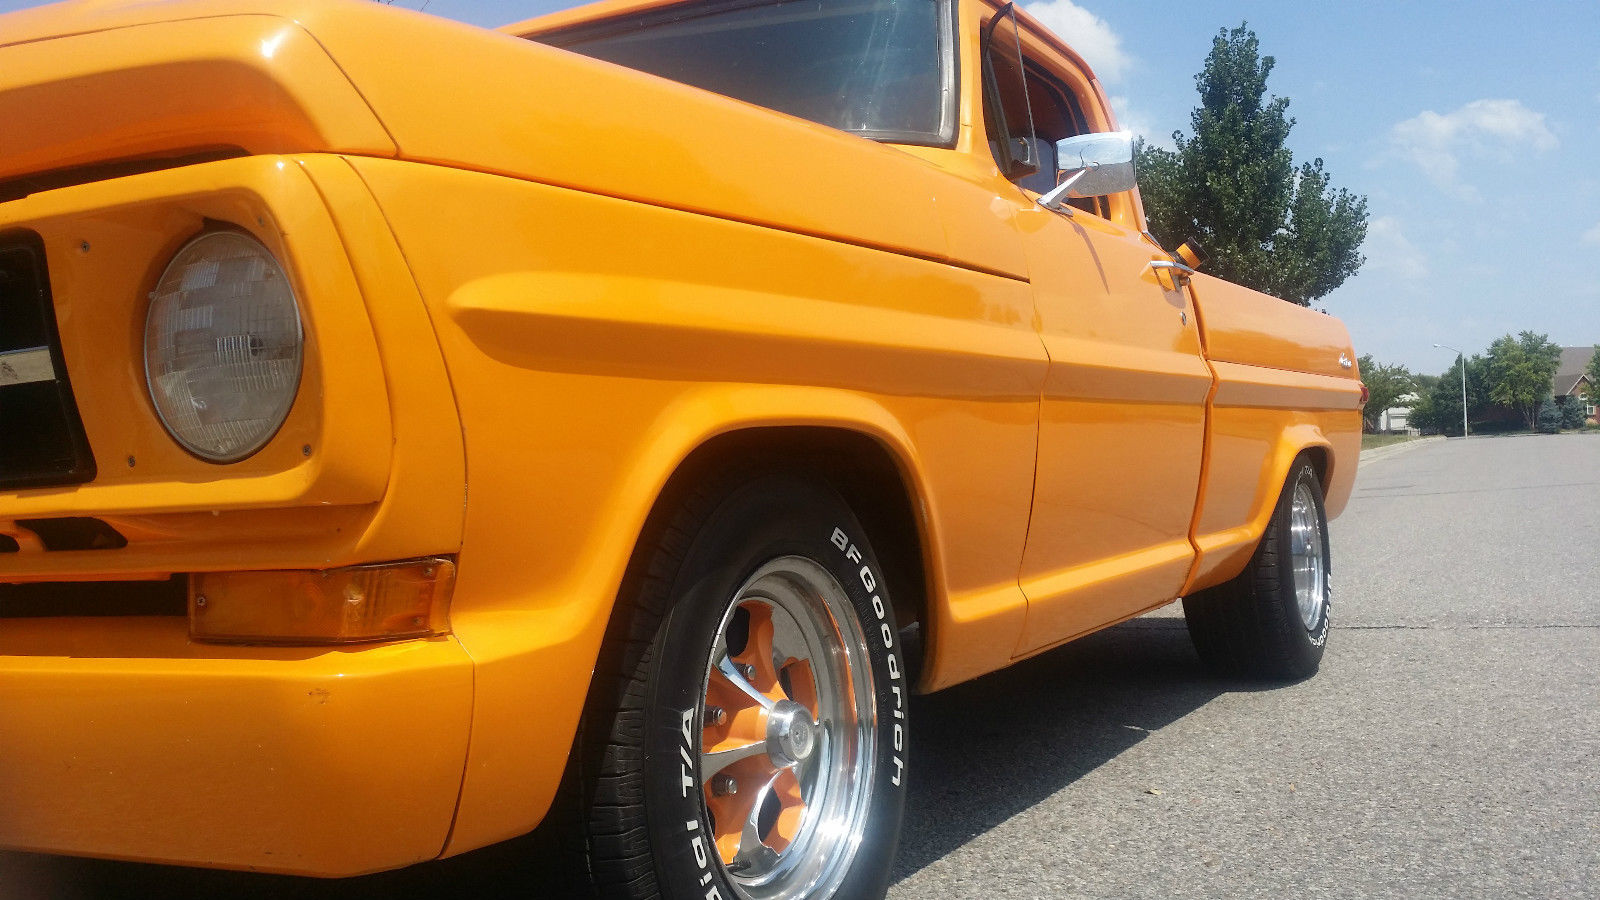 Trucks For Sale In Kansas >> Ford F100. Custom show truck. chopped, orange, f100. muscle truck - Classic Ford F-100 1970 for sale